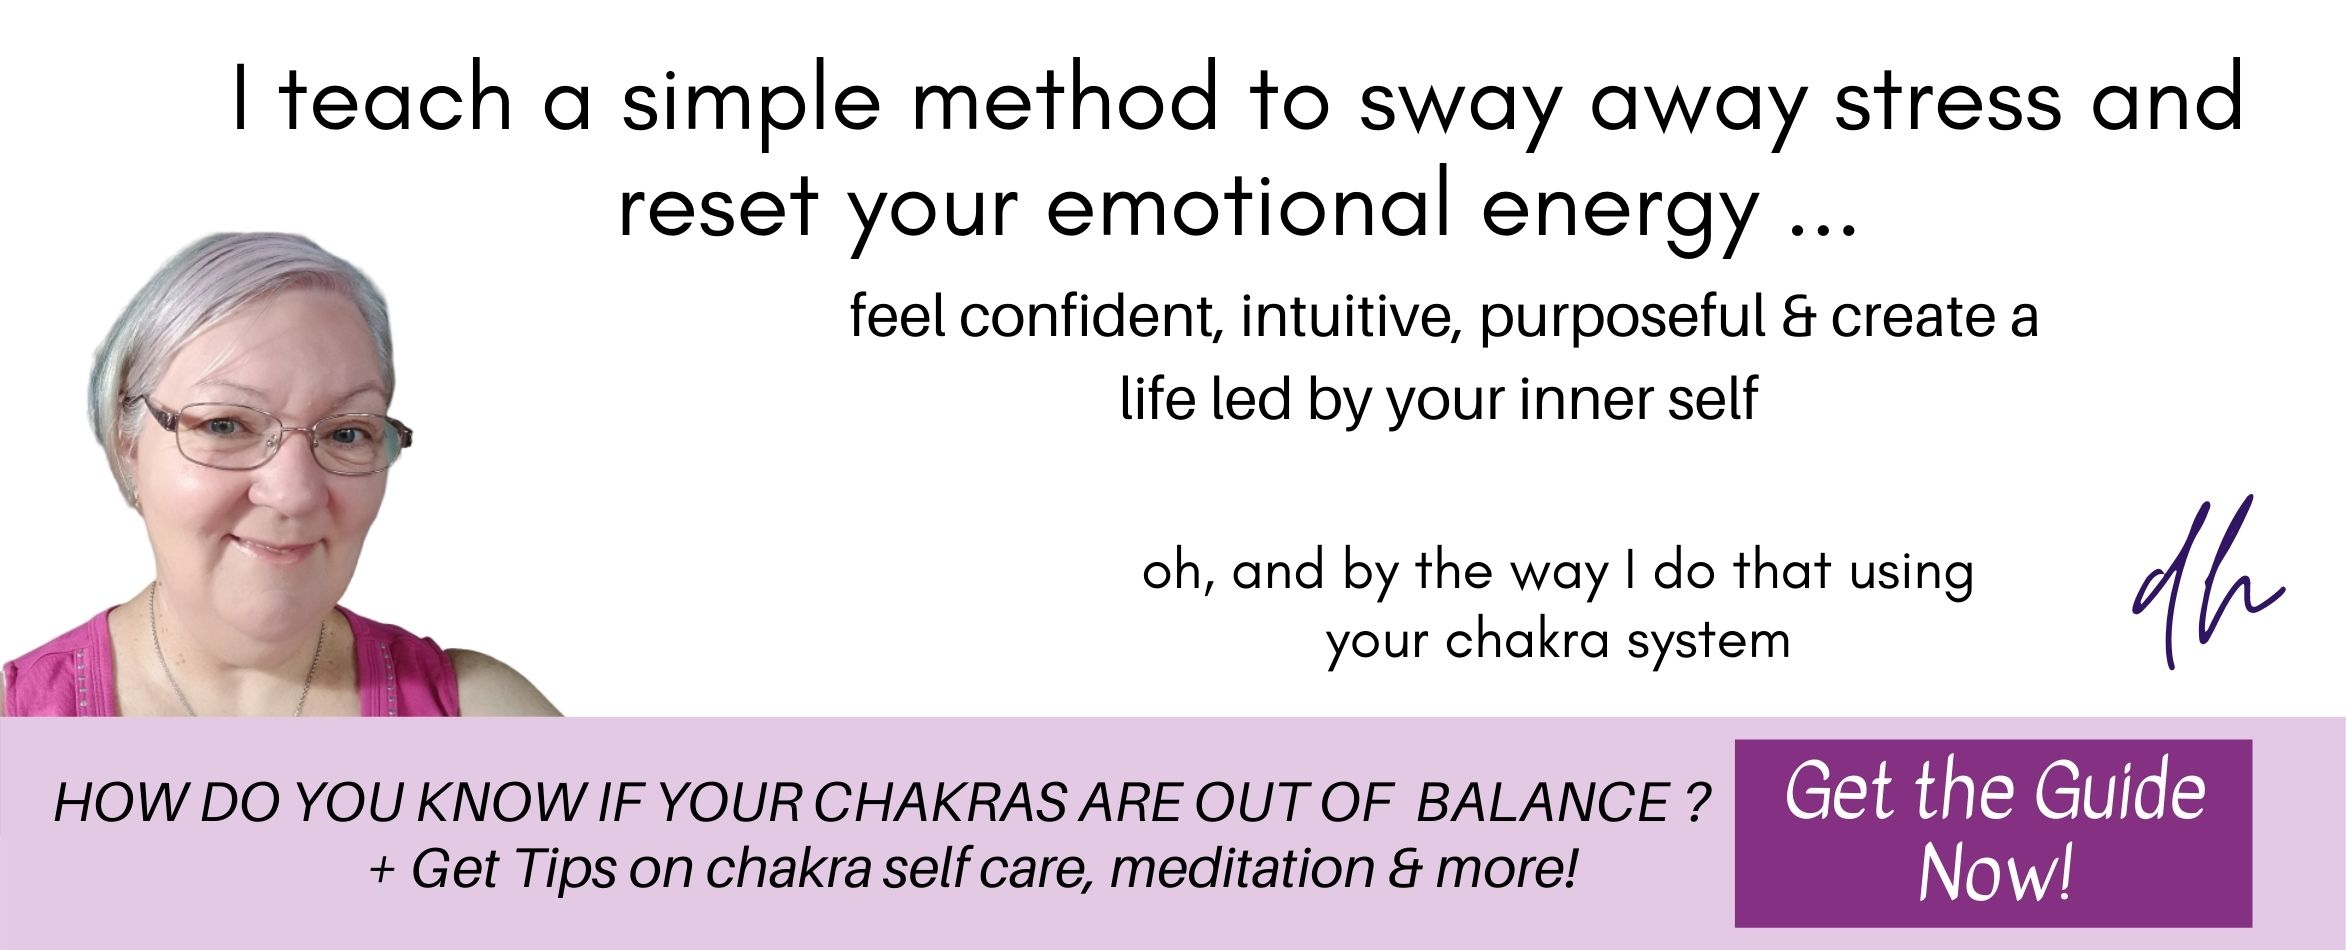 balanced chakras release stress naturally